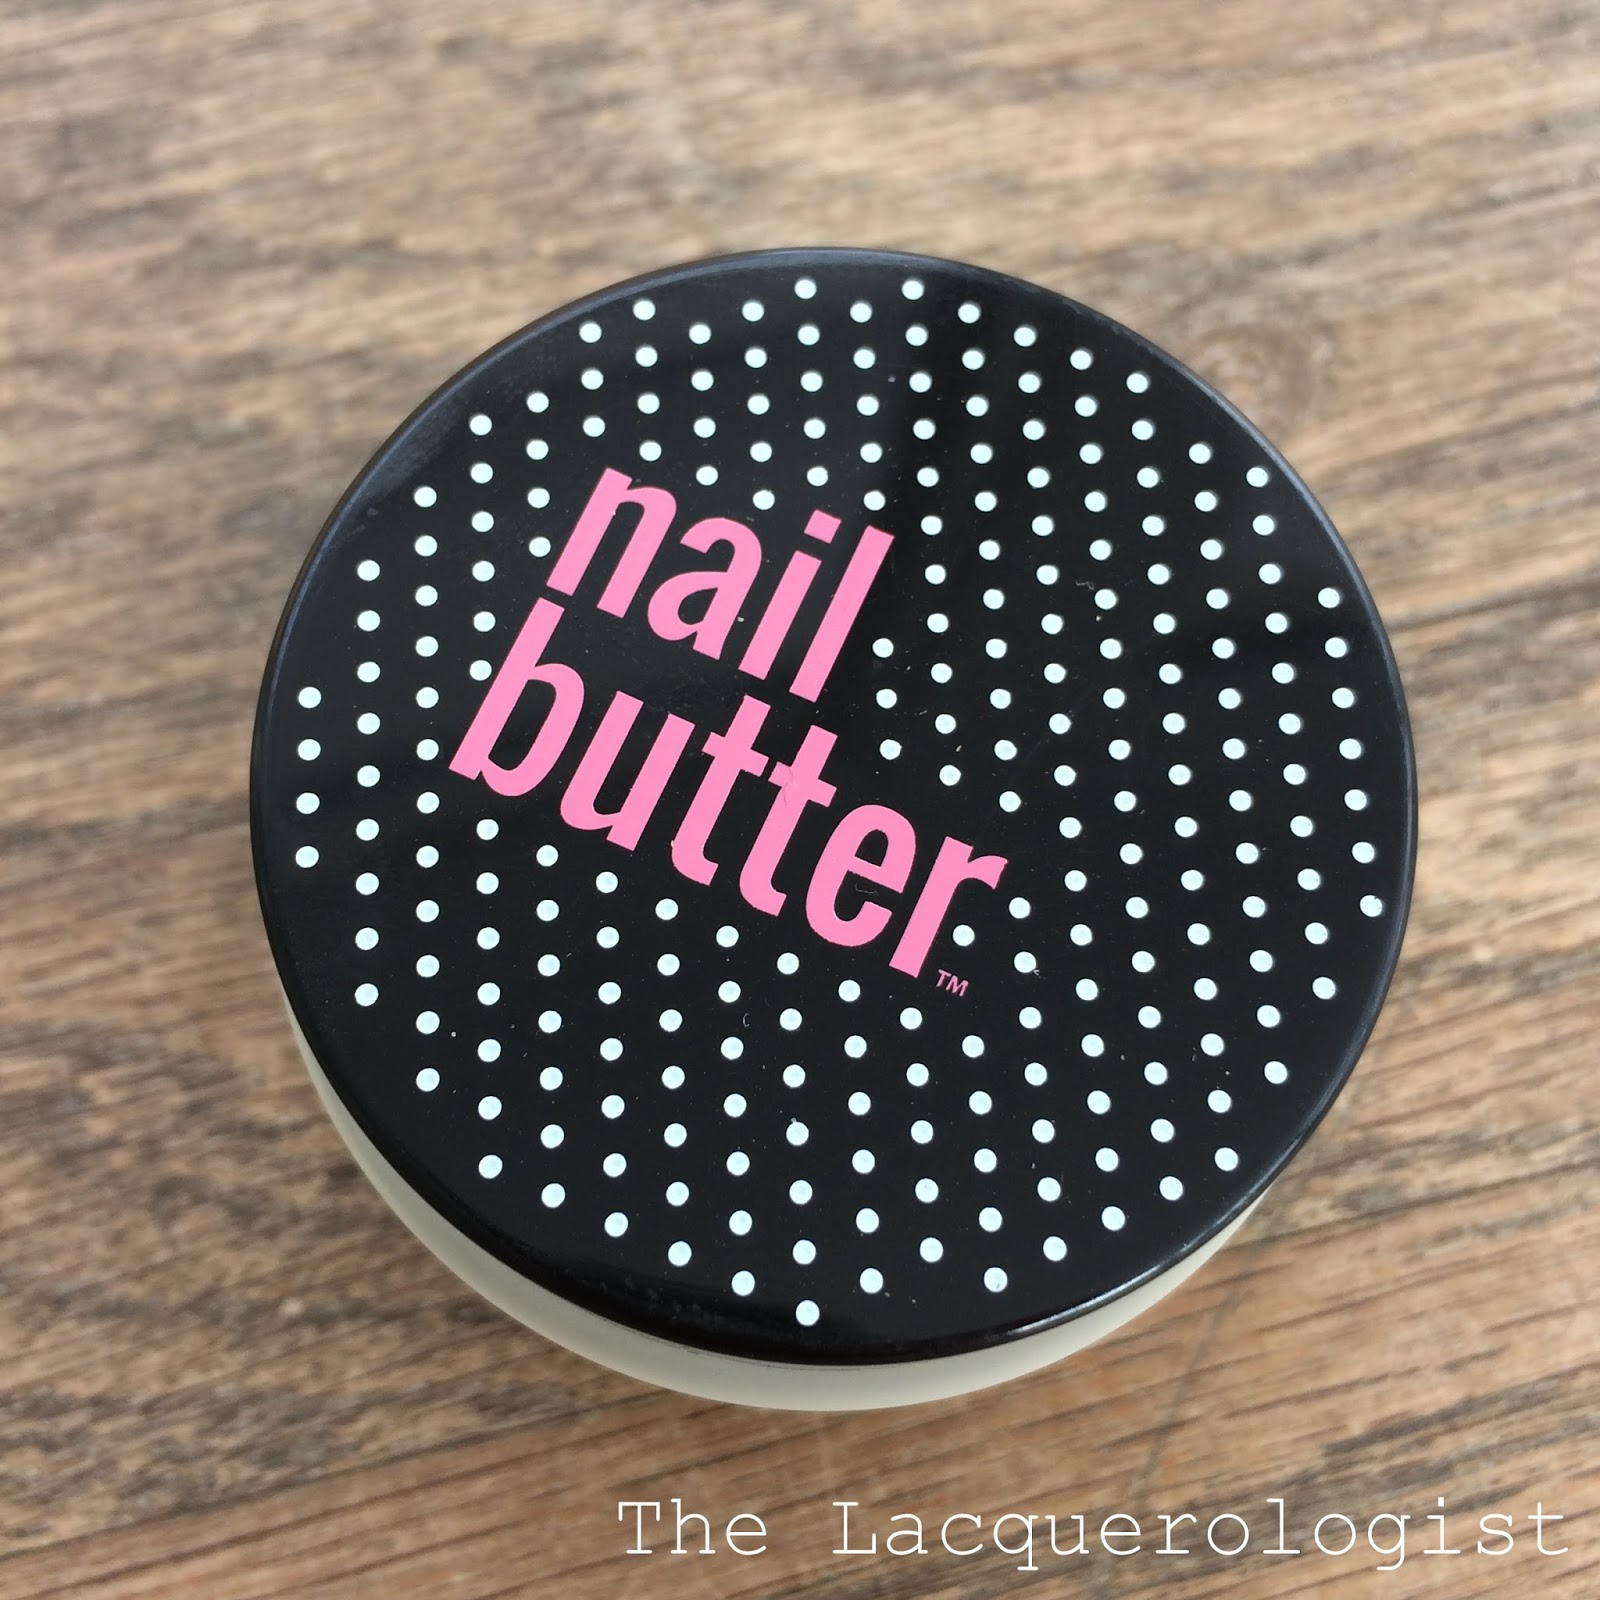 Nail Butter: My Experience & Review! • Casual Contrast